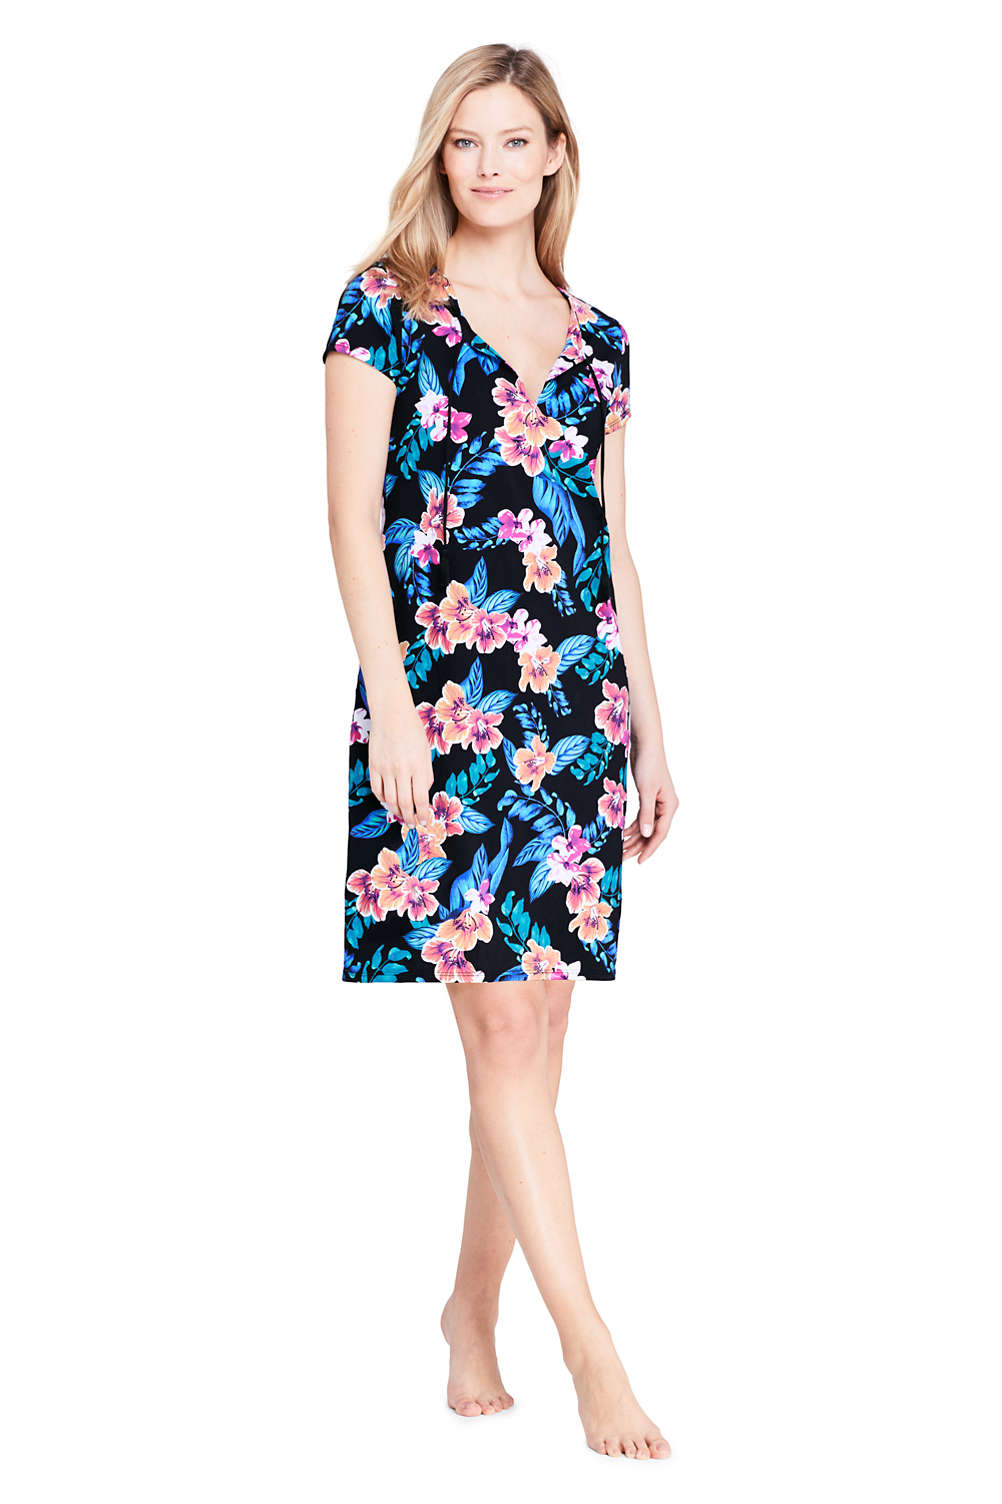 1448cce060c04 Women s Swim Cover-up Notch Neck Dress with UV Protection Print. Item   508179AHX. View Fullscreen